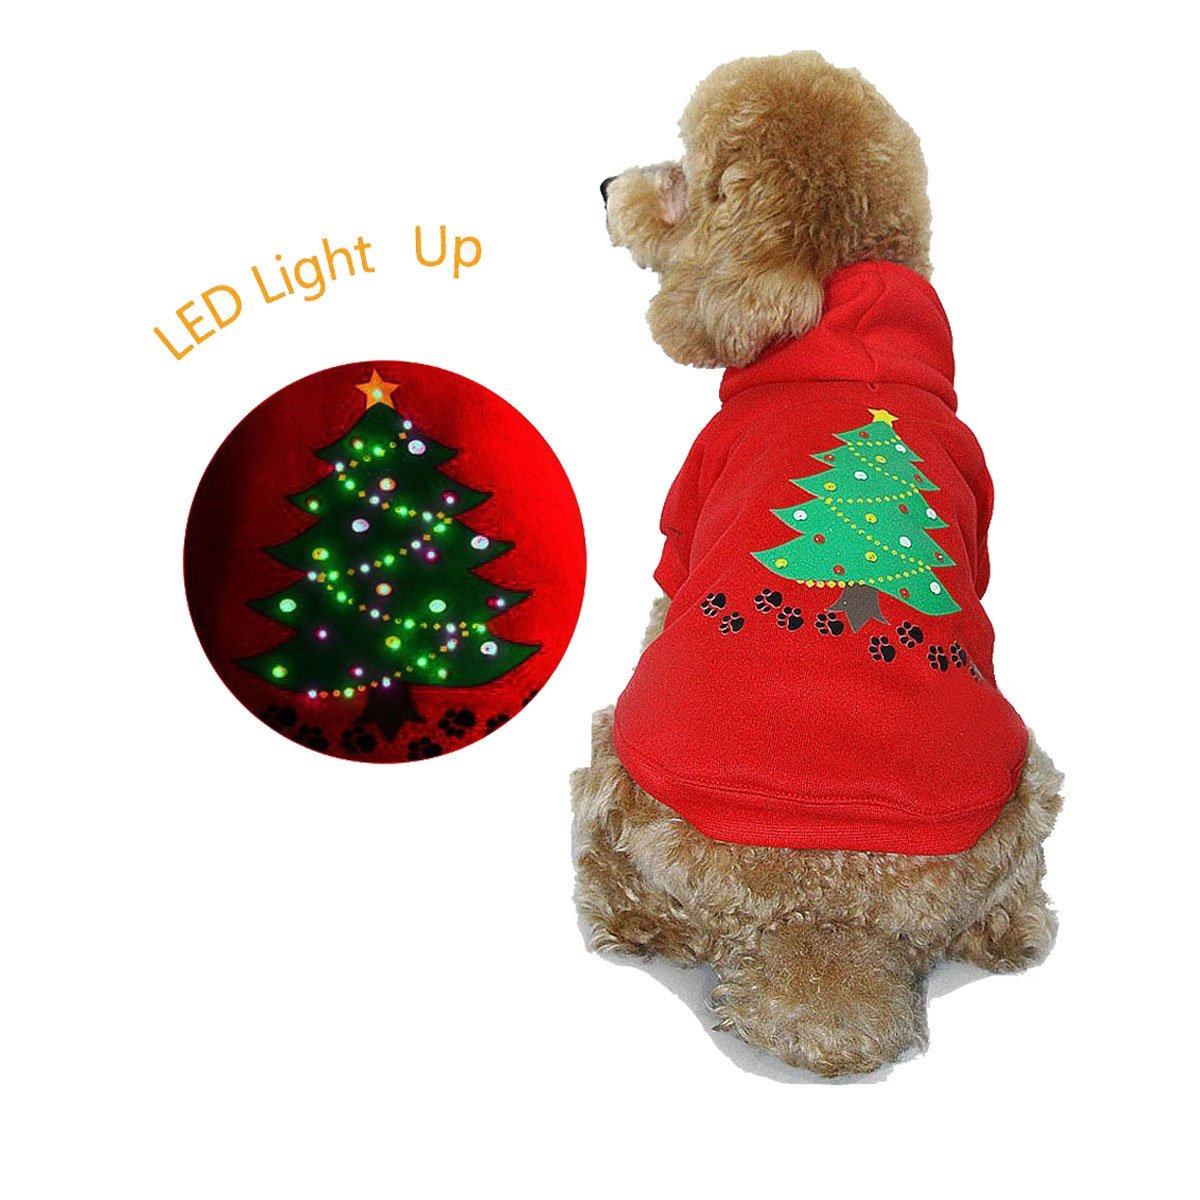 LED Christmas Dog Sweatshirt Lighted Holiday Puppy Hoodie Pet Shirt Cat Winter Warm Clothes (S, Red)